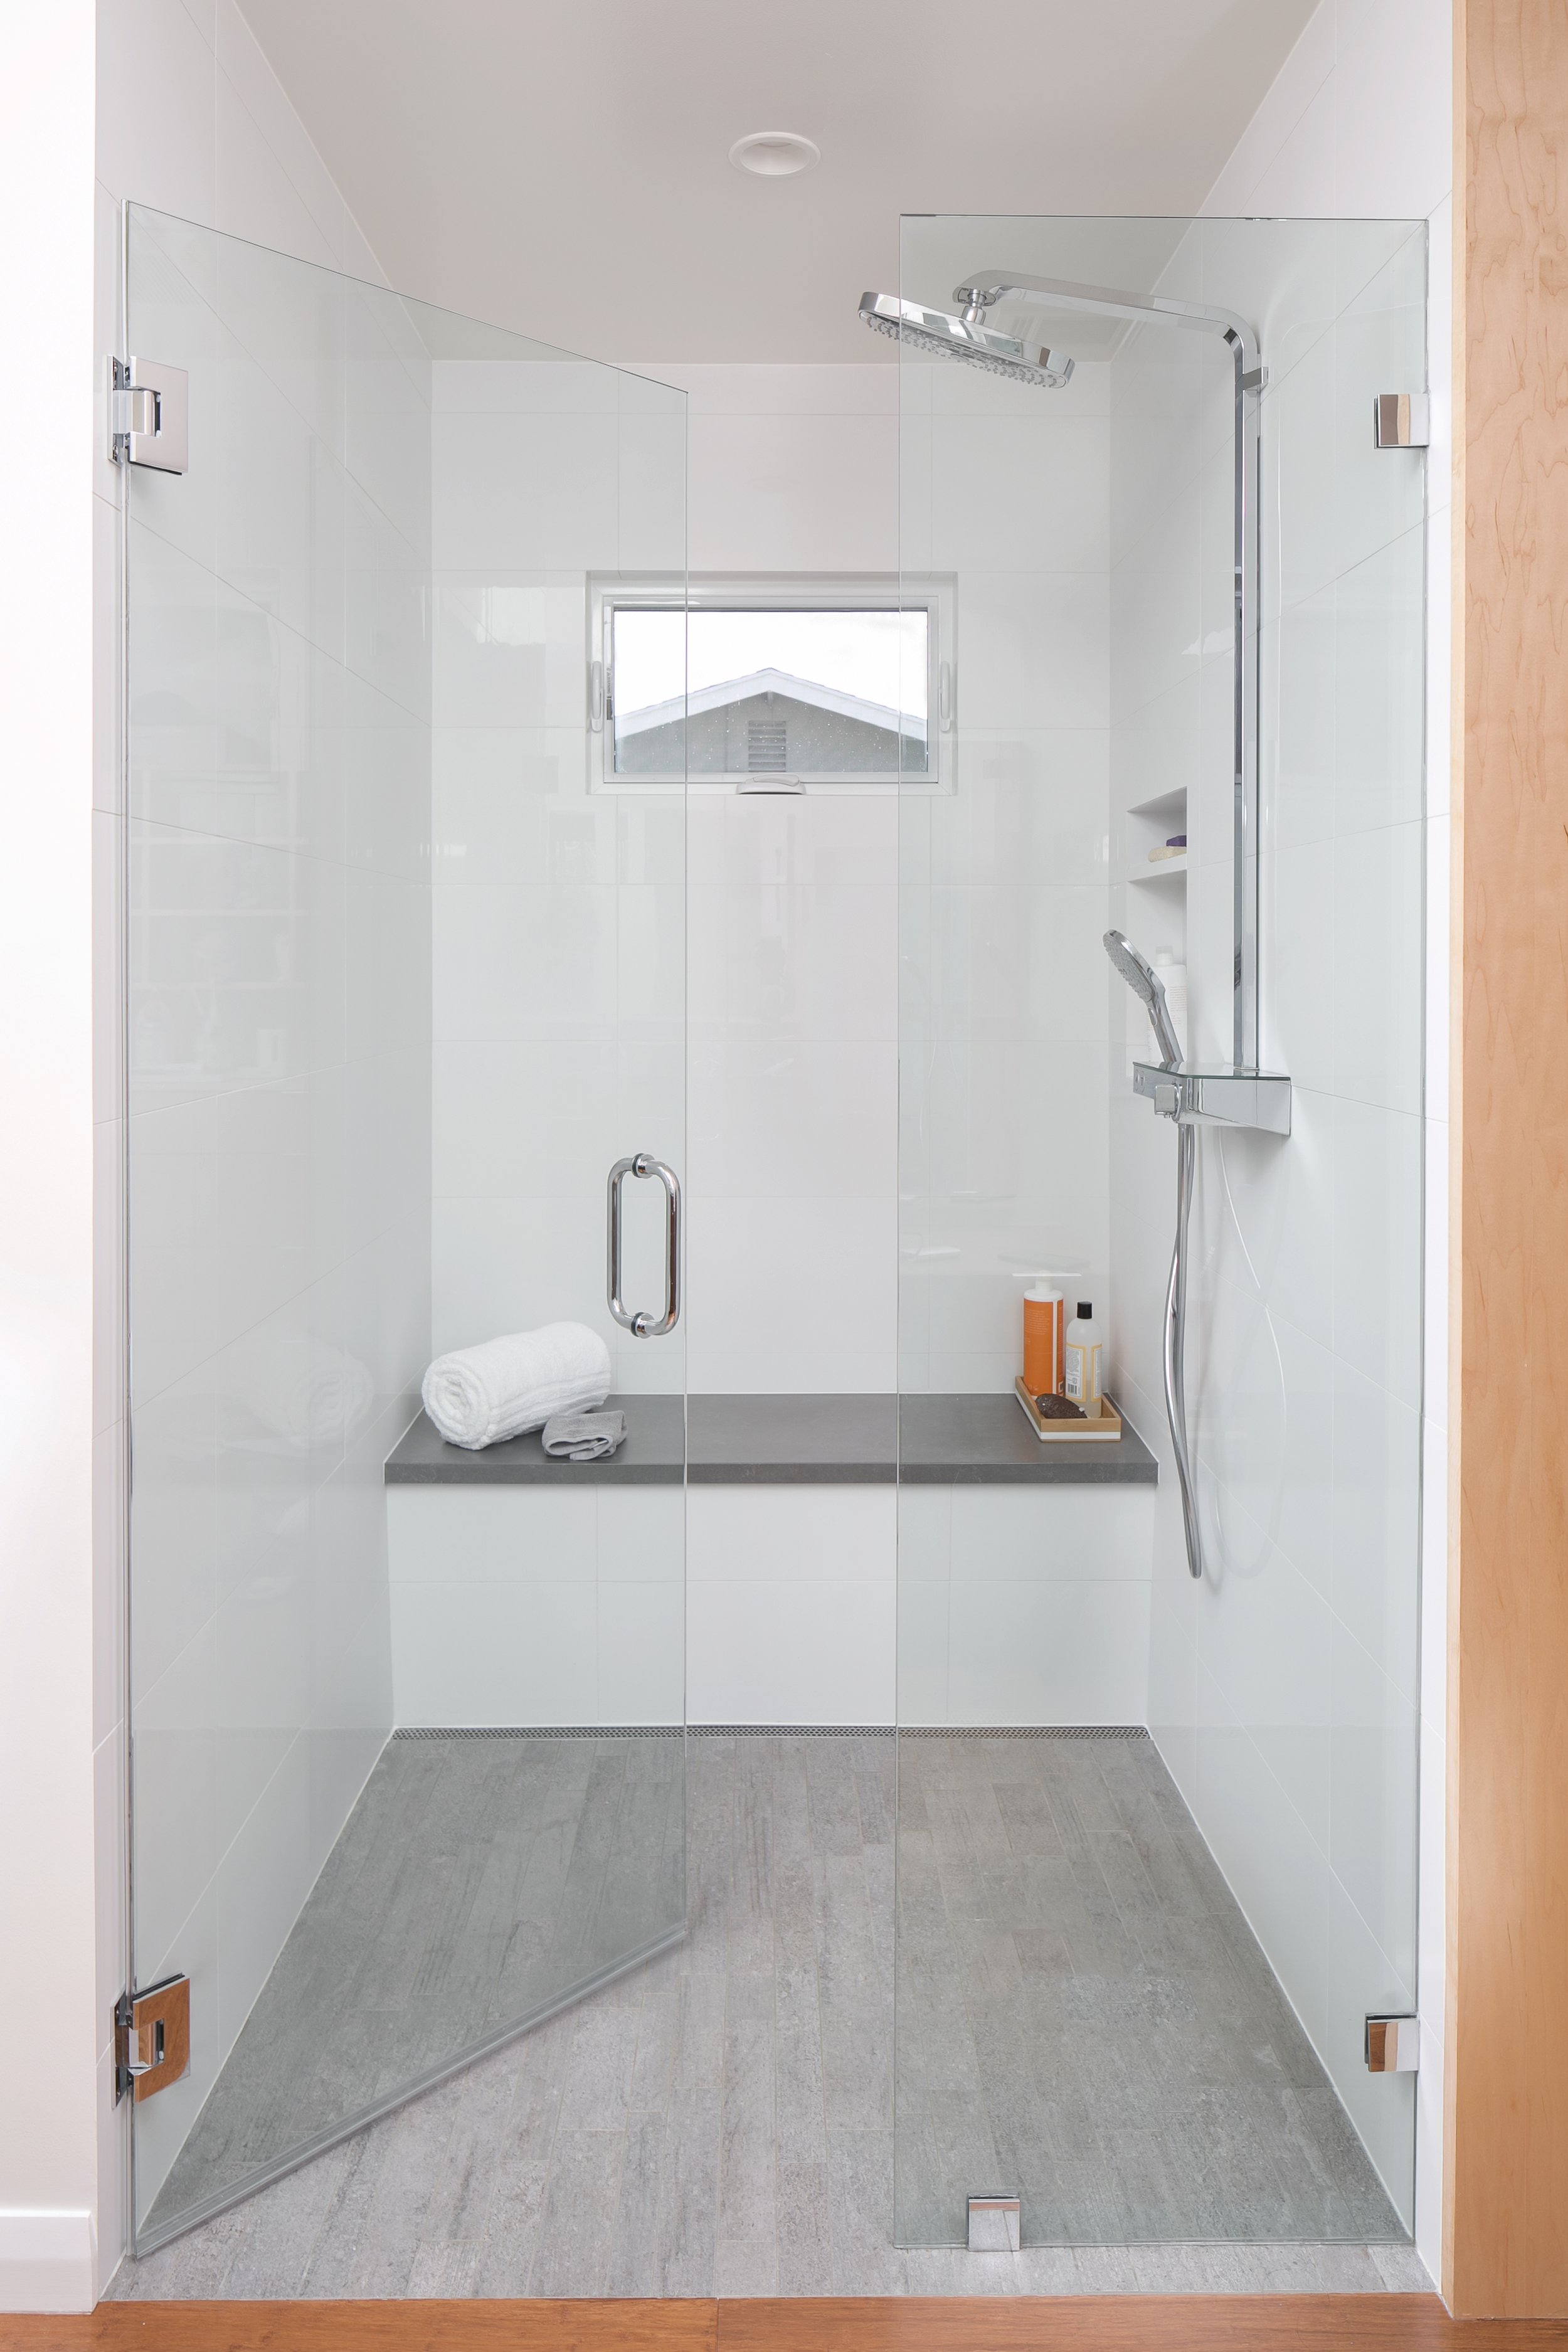 Walk-in shower design with plenty of light: white field tiles, light grey floor and bench top, small window, clear glass enclosure and sleek modern head and handheld combo faucet